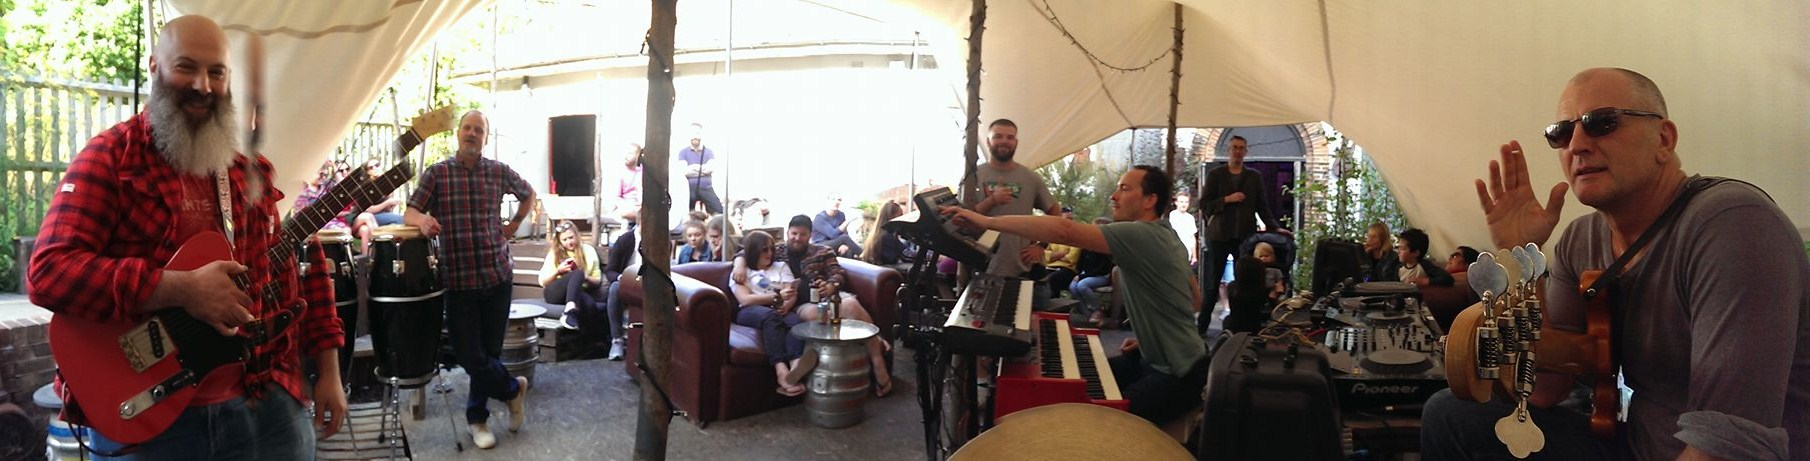 The drummer's view - Unfest Sunday Sessions, Tunbridge Wells Forum